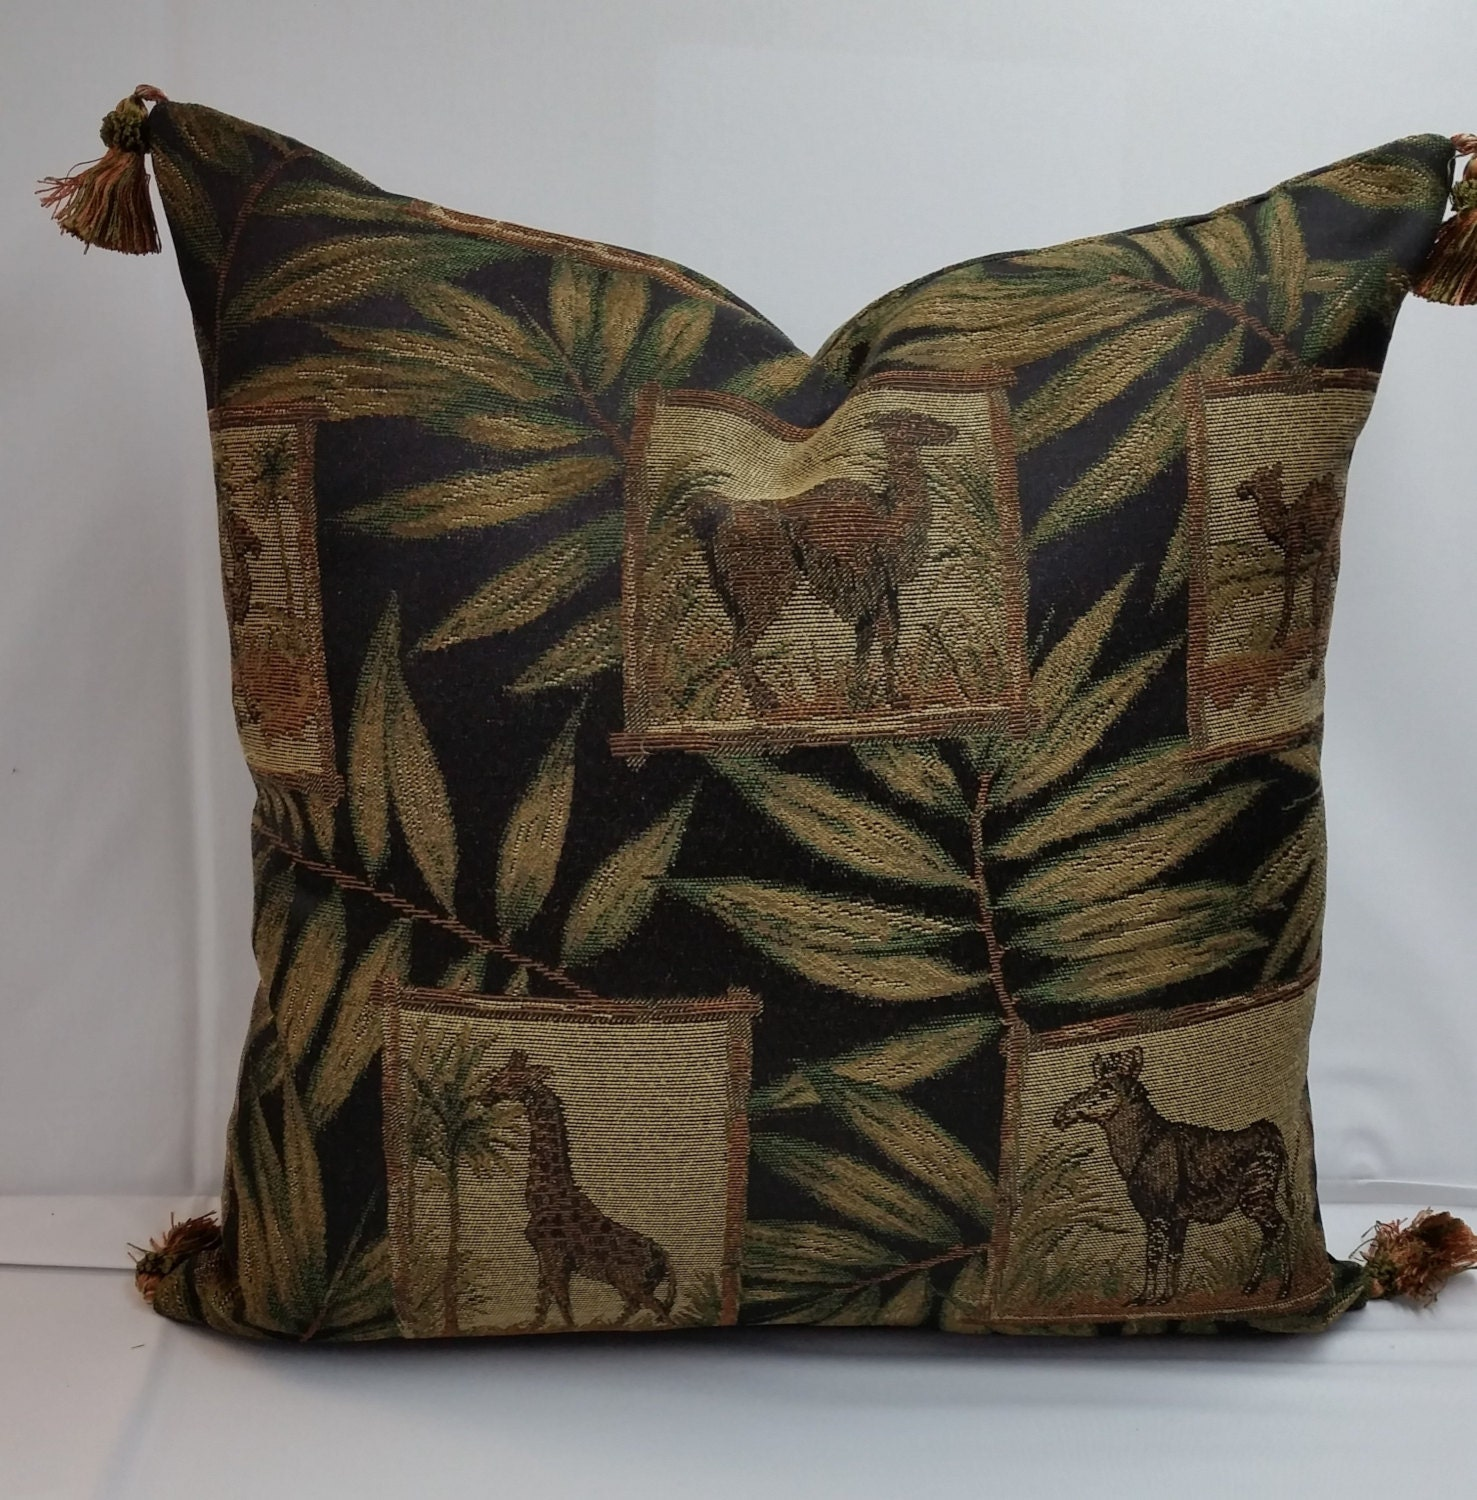 Throw Pillows With Tassels : Tapestry decorative pillow tassels 20 x 20 animals